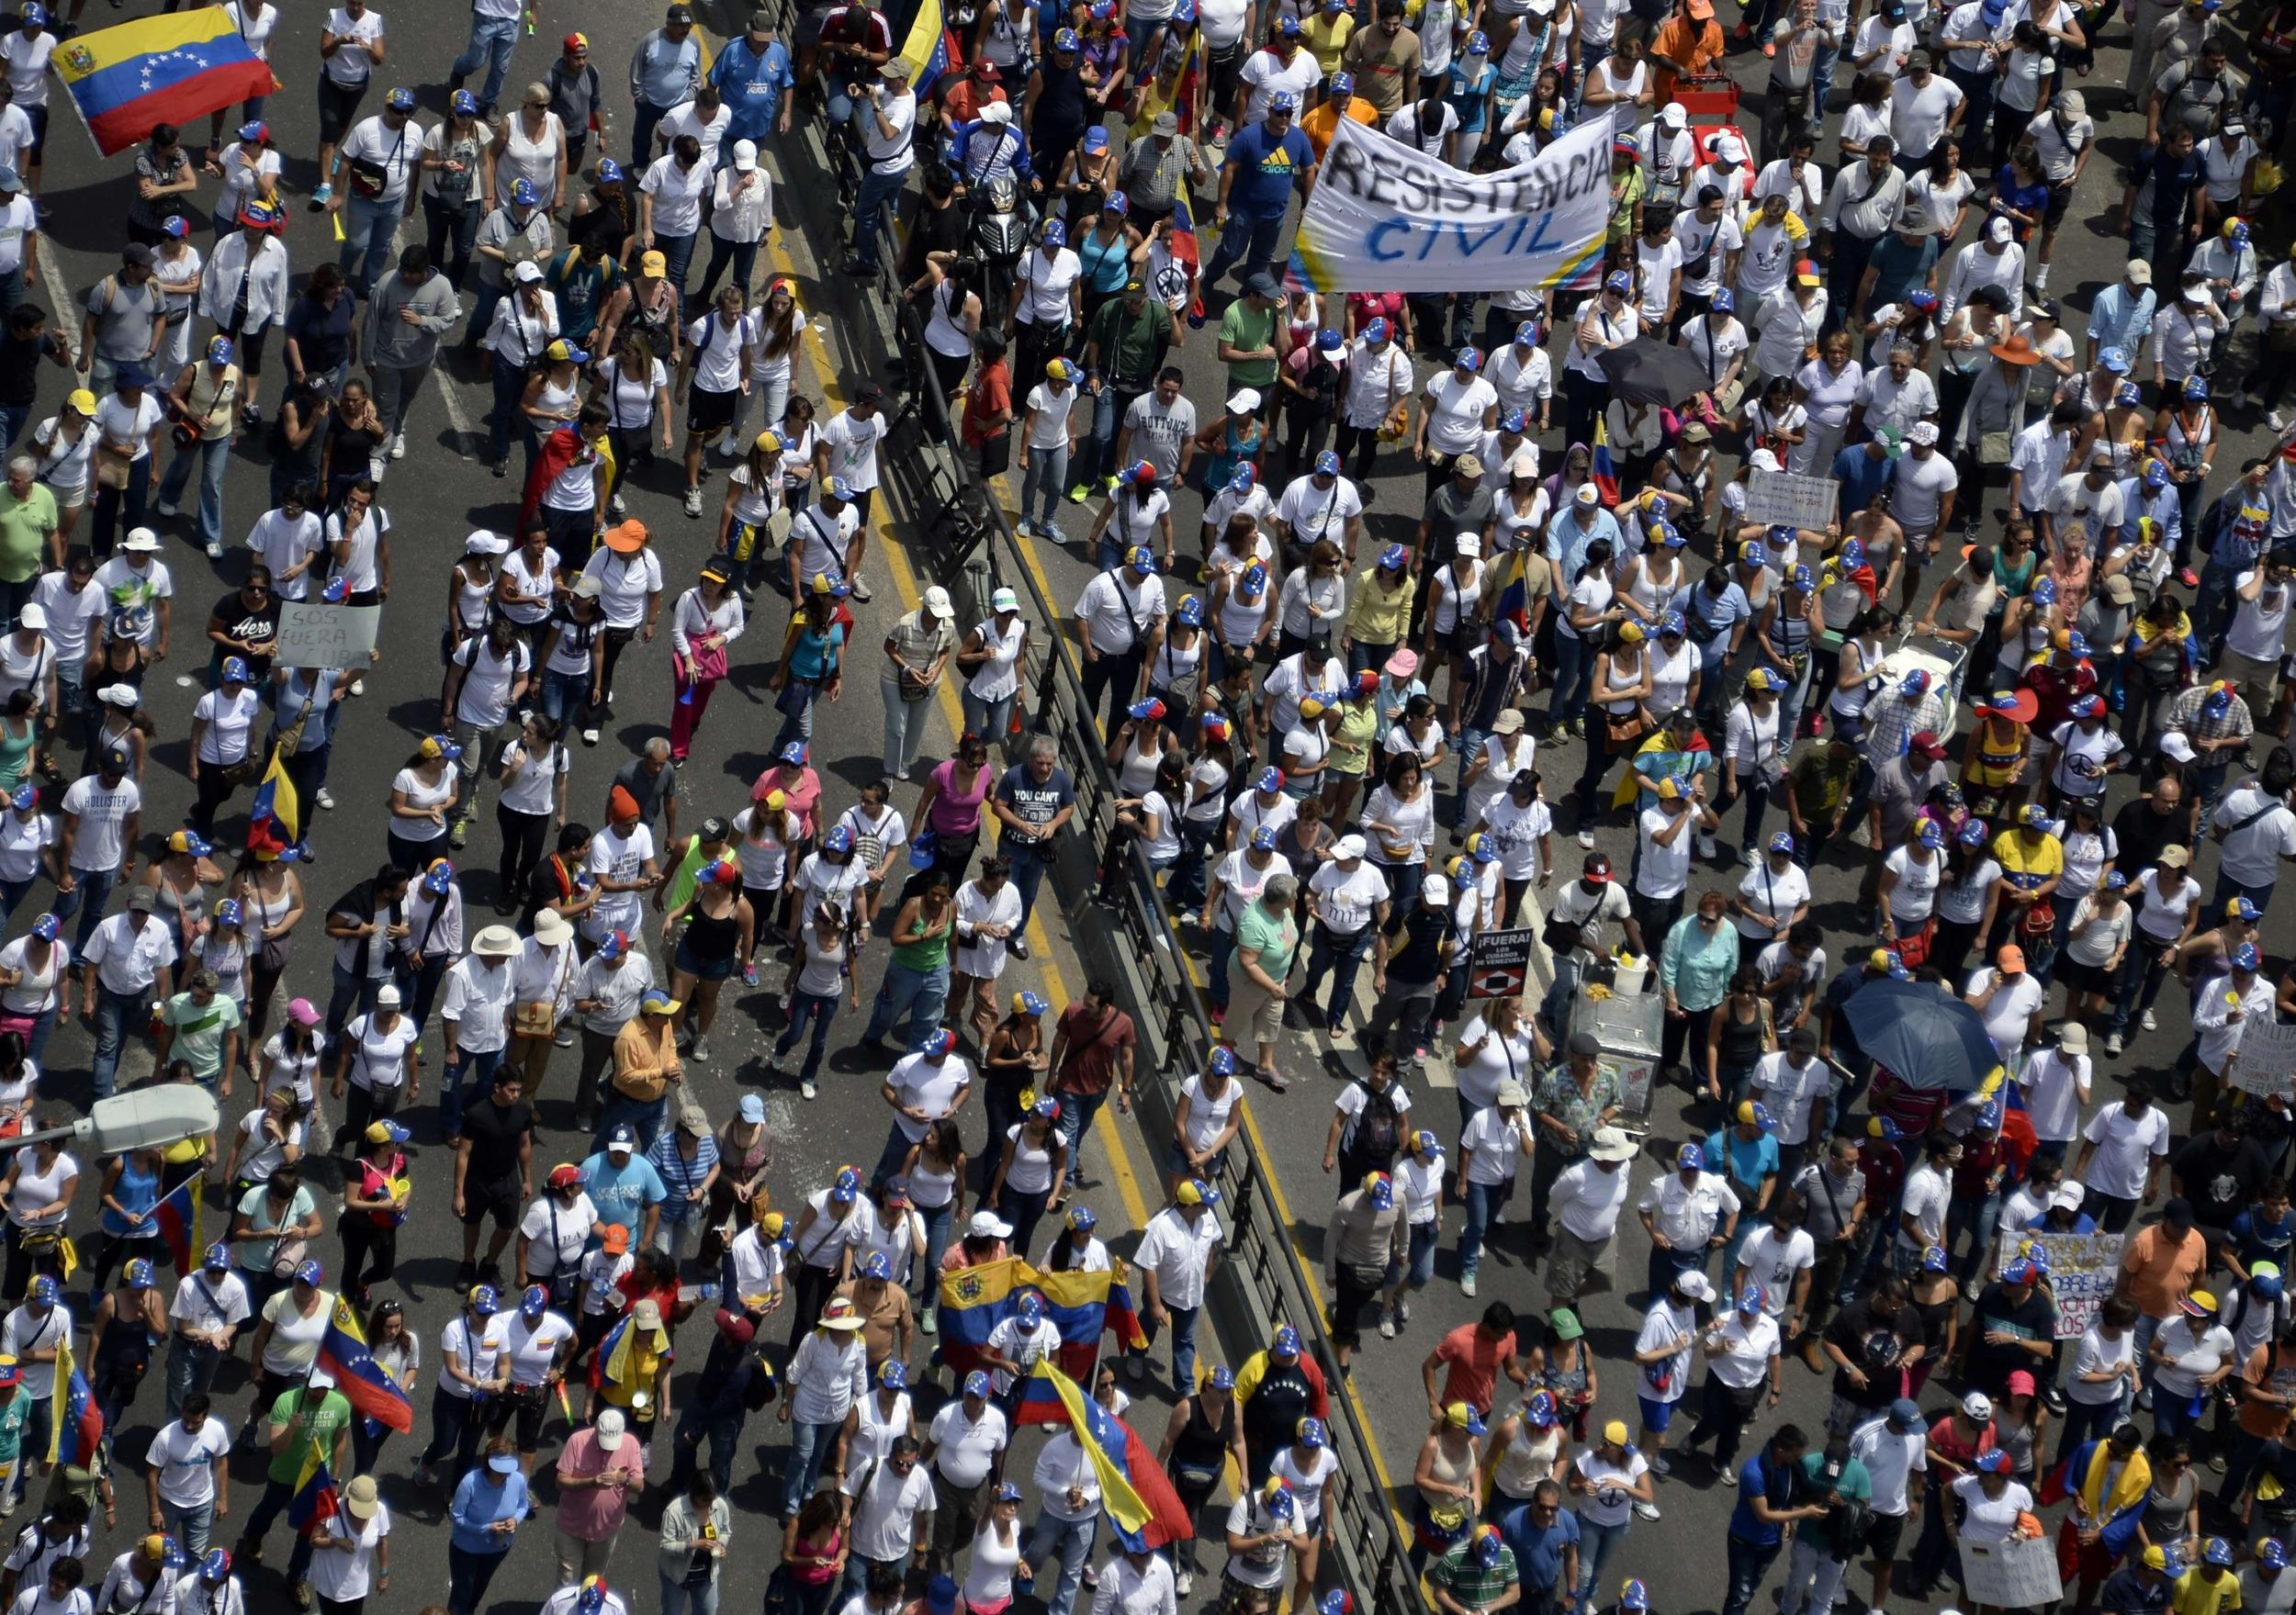 Opposition activists march toward the Cuban embassy to protest against Cuban interference in Venezuela's internal affairs